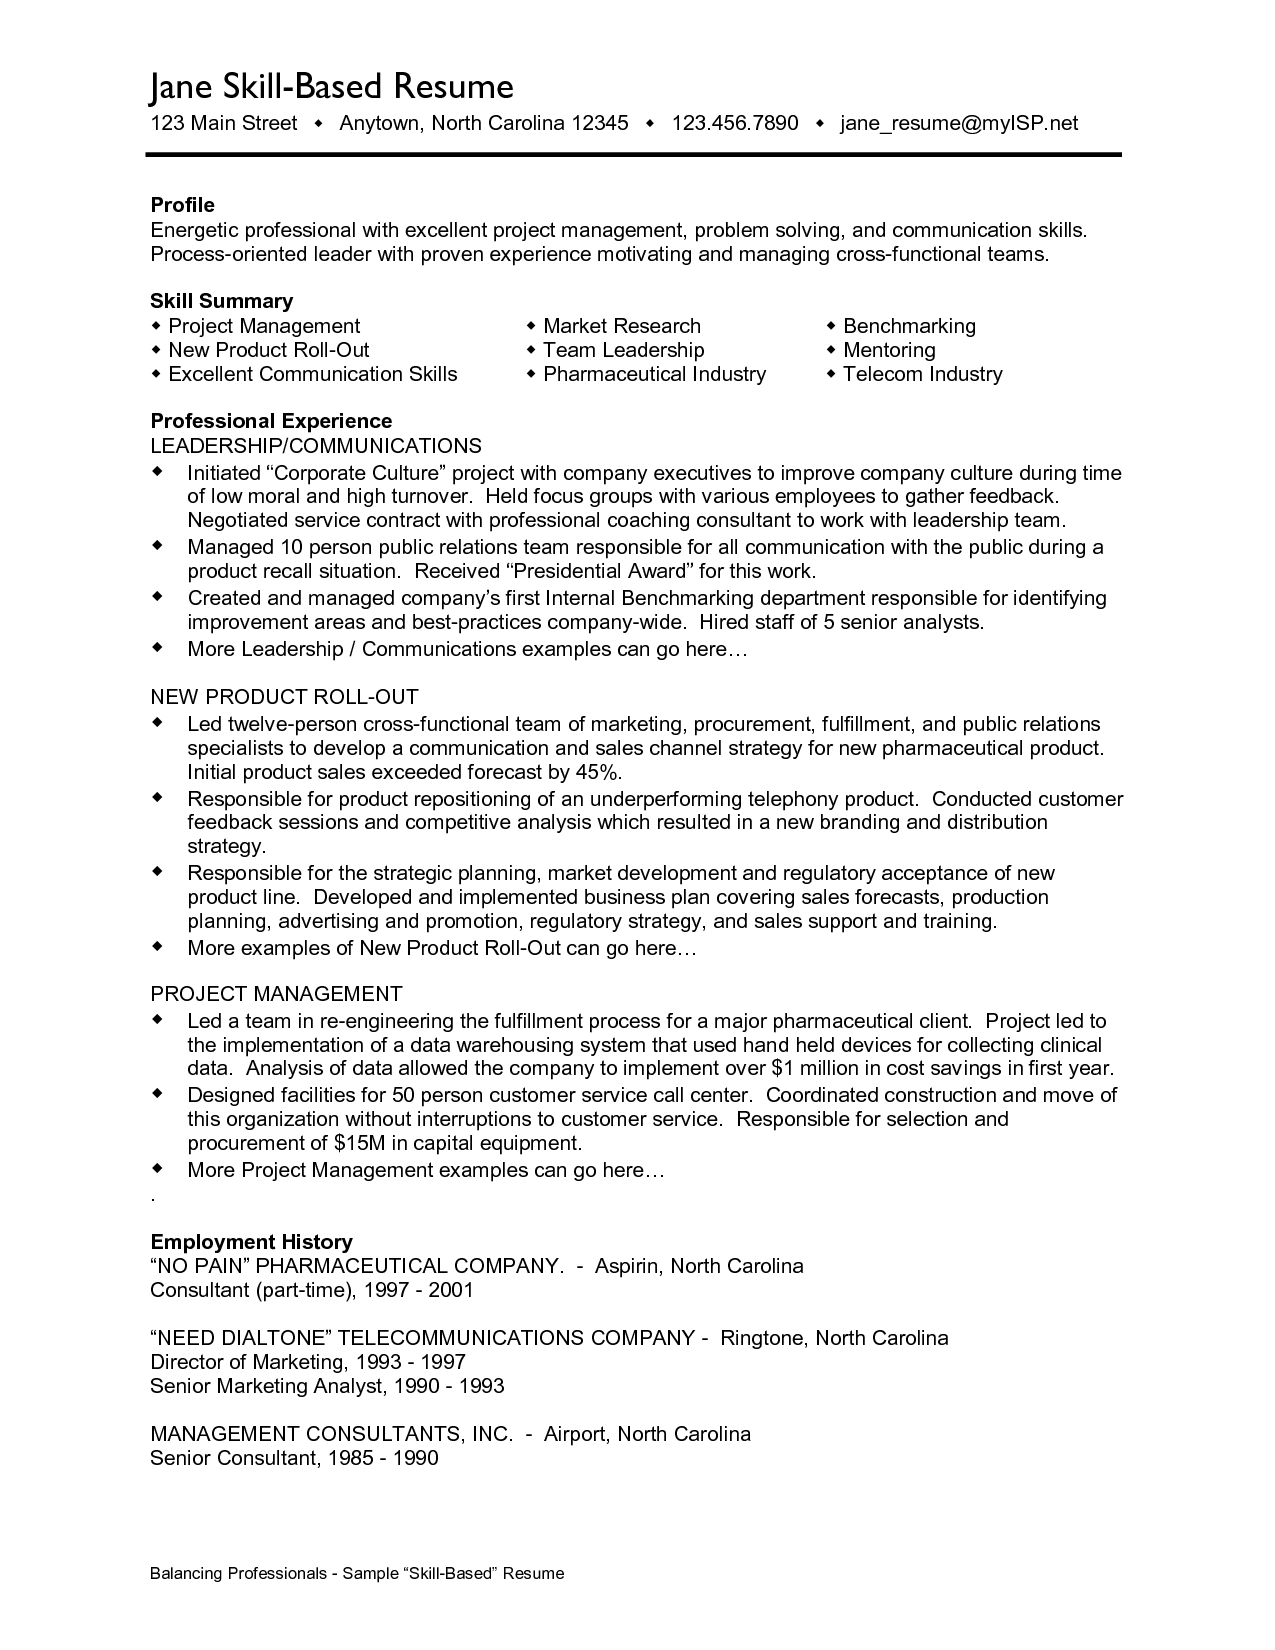 Skill Resume Format Job Resume Communication Skills Http Resumecareer